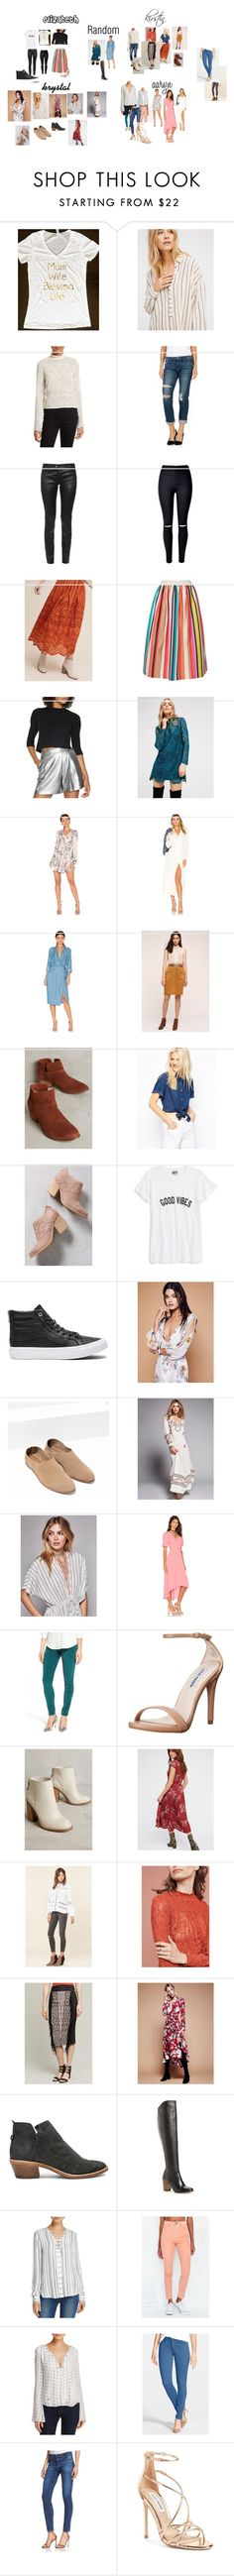 """""""Photo Shoot"""" by pamelynrocco on Polyvore featuring Free People, Tracy Reese, Paige Denim, Balenciaga, WithChic, Ne Quittez Pas, Alice + Olivia, Halston Heritage, Majorelle and L'Academie"""